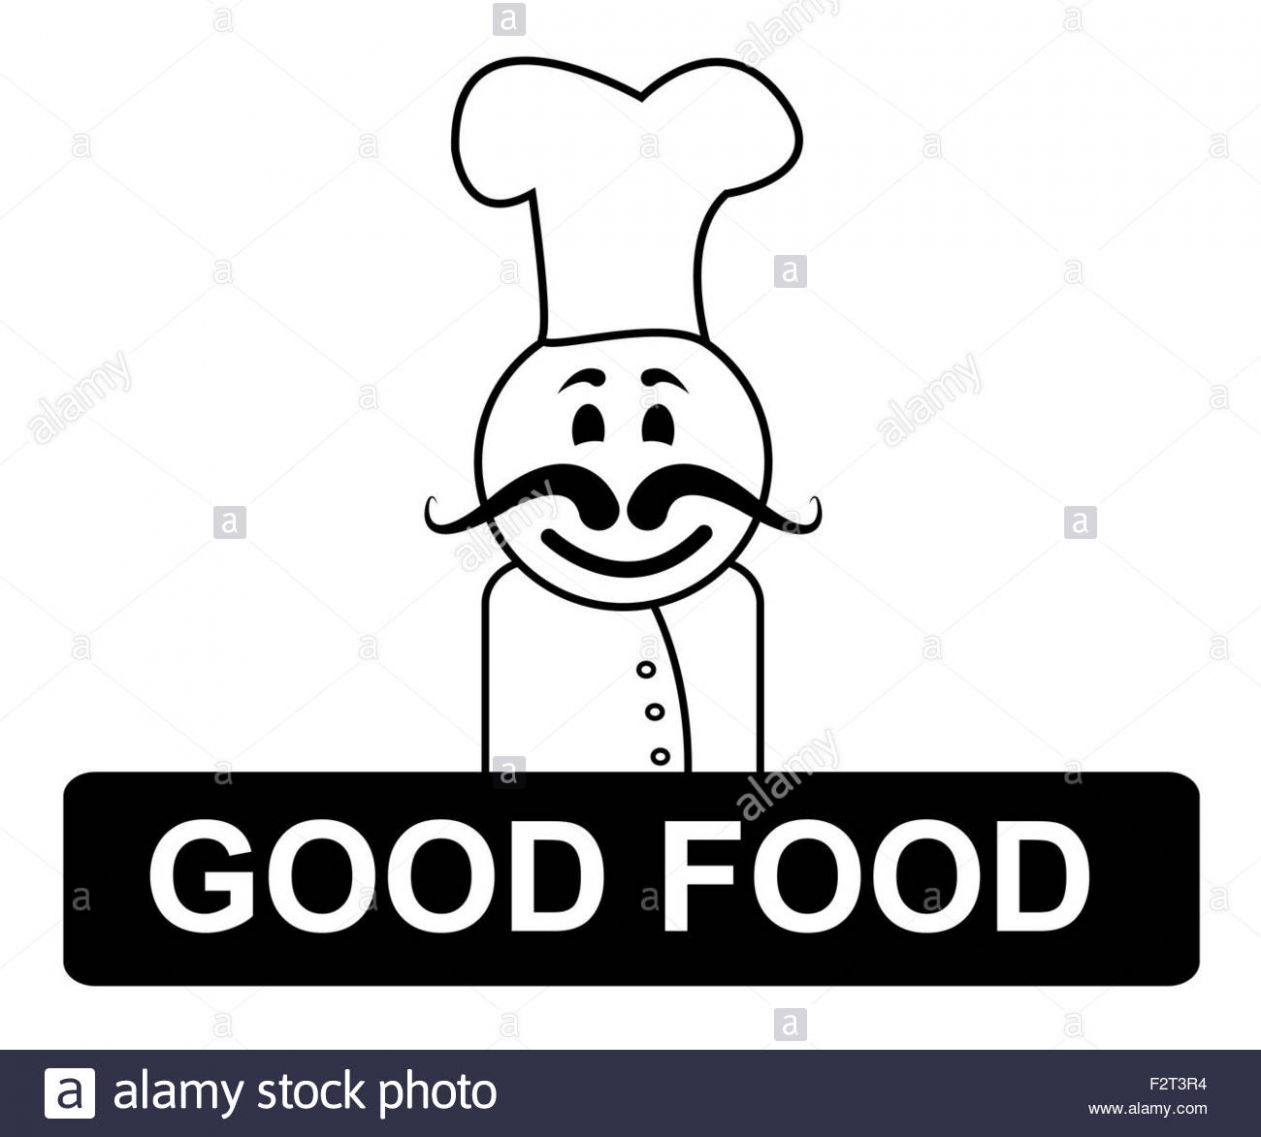 Good Food Chef Meaning Cooking In Kitchen And Recipes Stock Photo ..